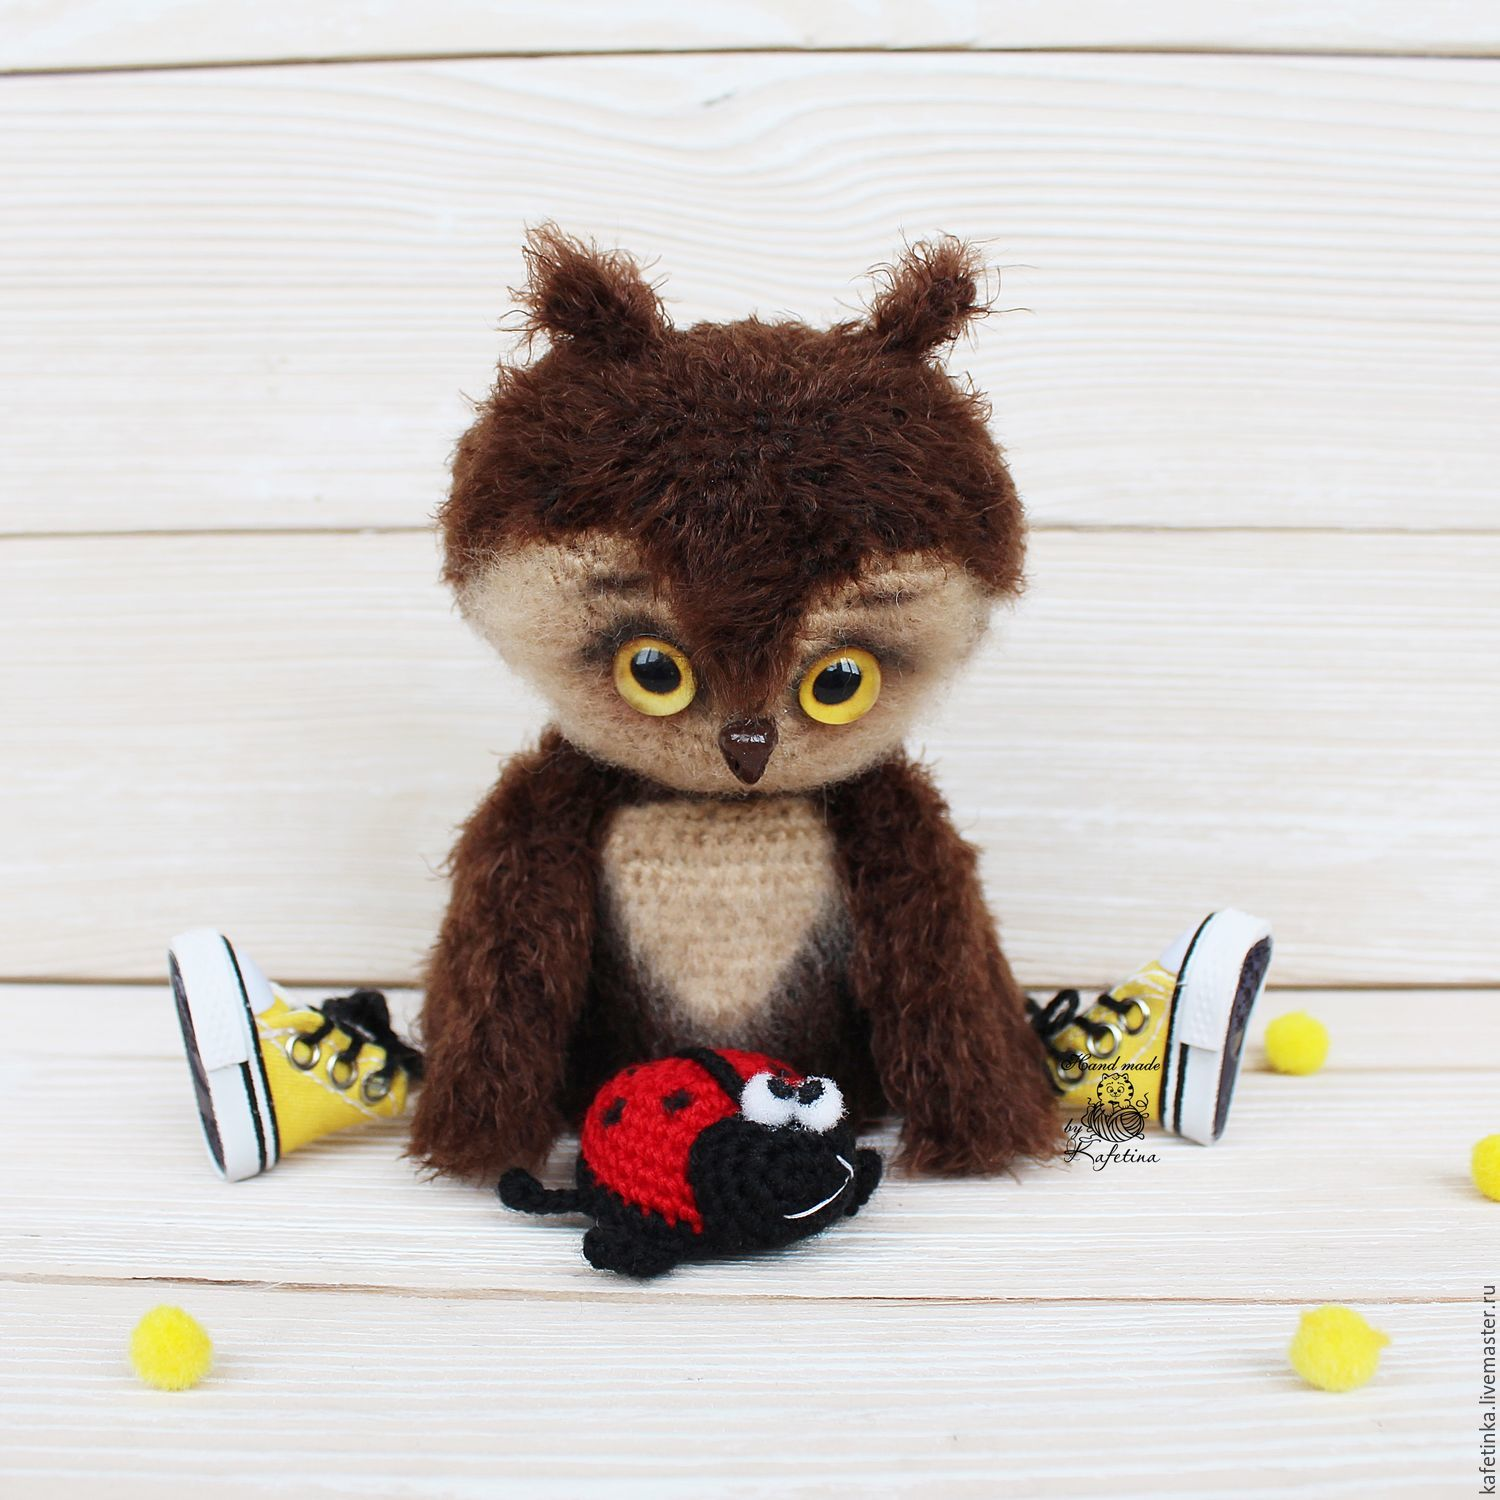 Owly and his friend speckled. Hook. Handmade toys. Hope (Cavatina)